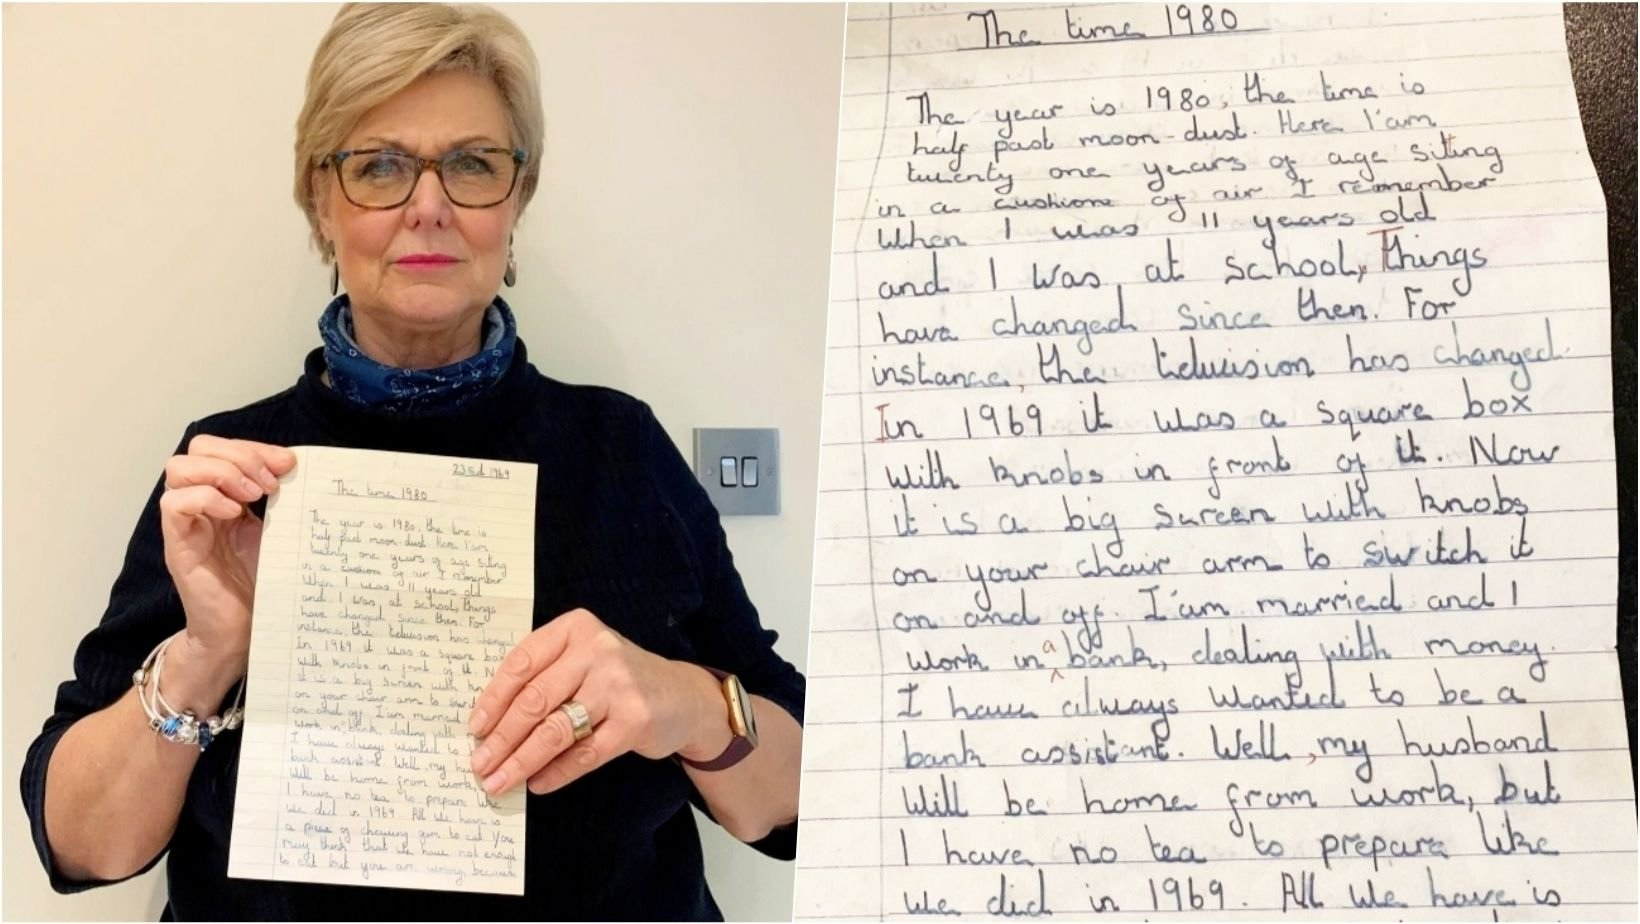 1 39.jpg?resize=1200,630 - Young Girl's Strange Letter From 1969 Made ACCURATE Predictions About The Future